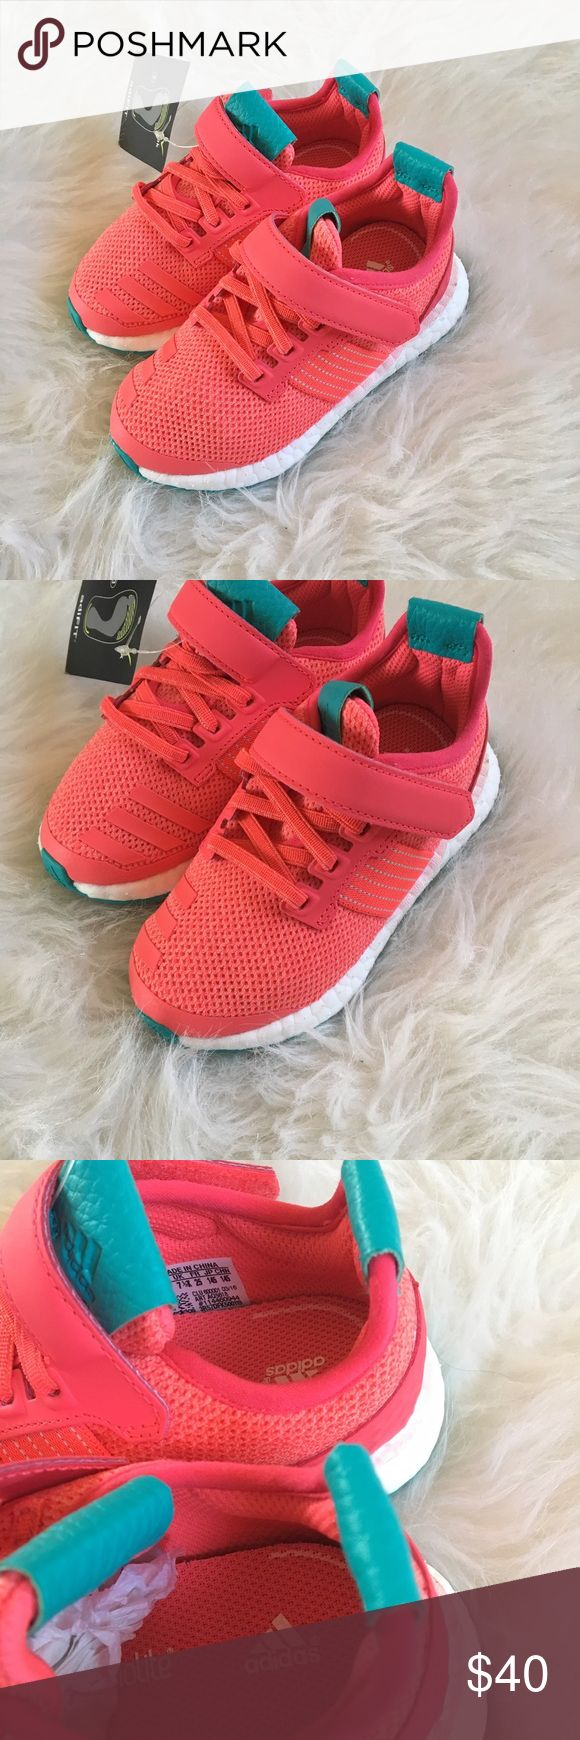 Adidas Pure Boost ZG Orange Glow 8K Purchased for my niece in 2 sizes and she bypassed the size 8 straight away. Fit true to size. adidas Shoes Sneakers